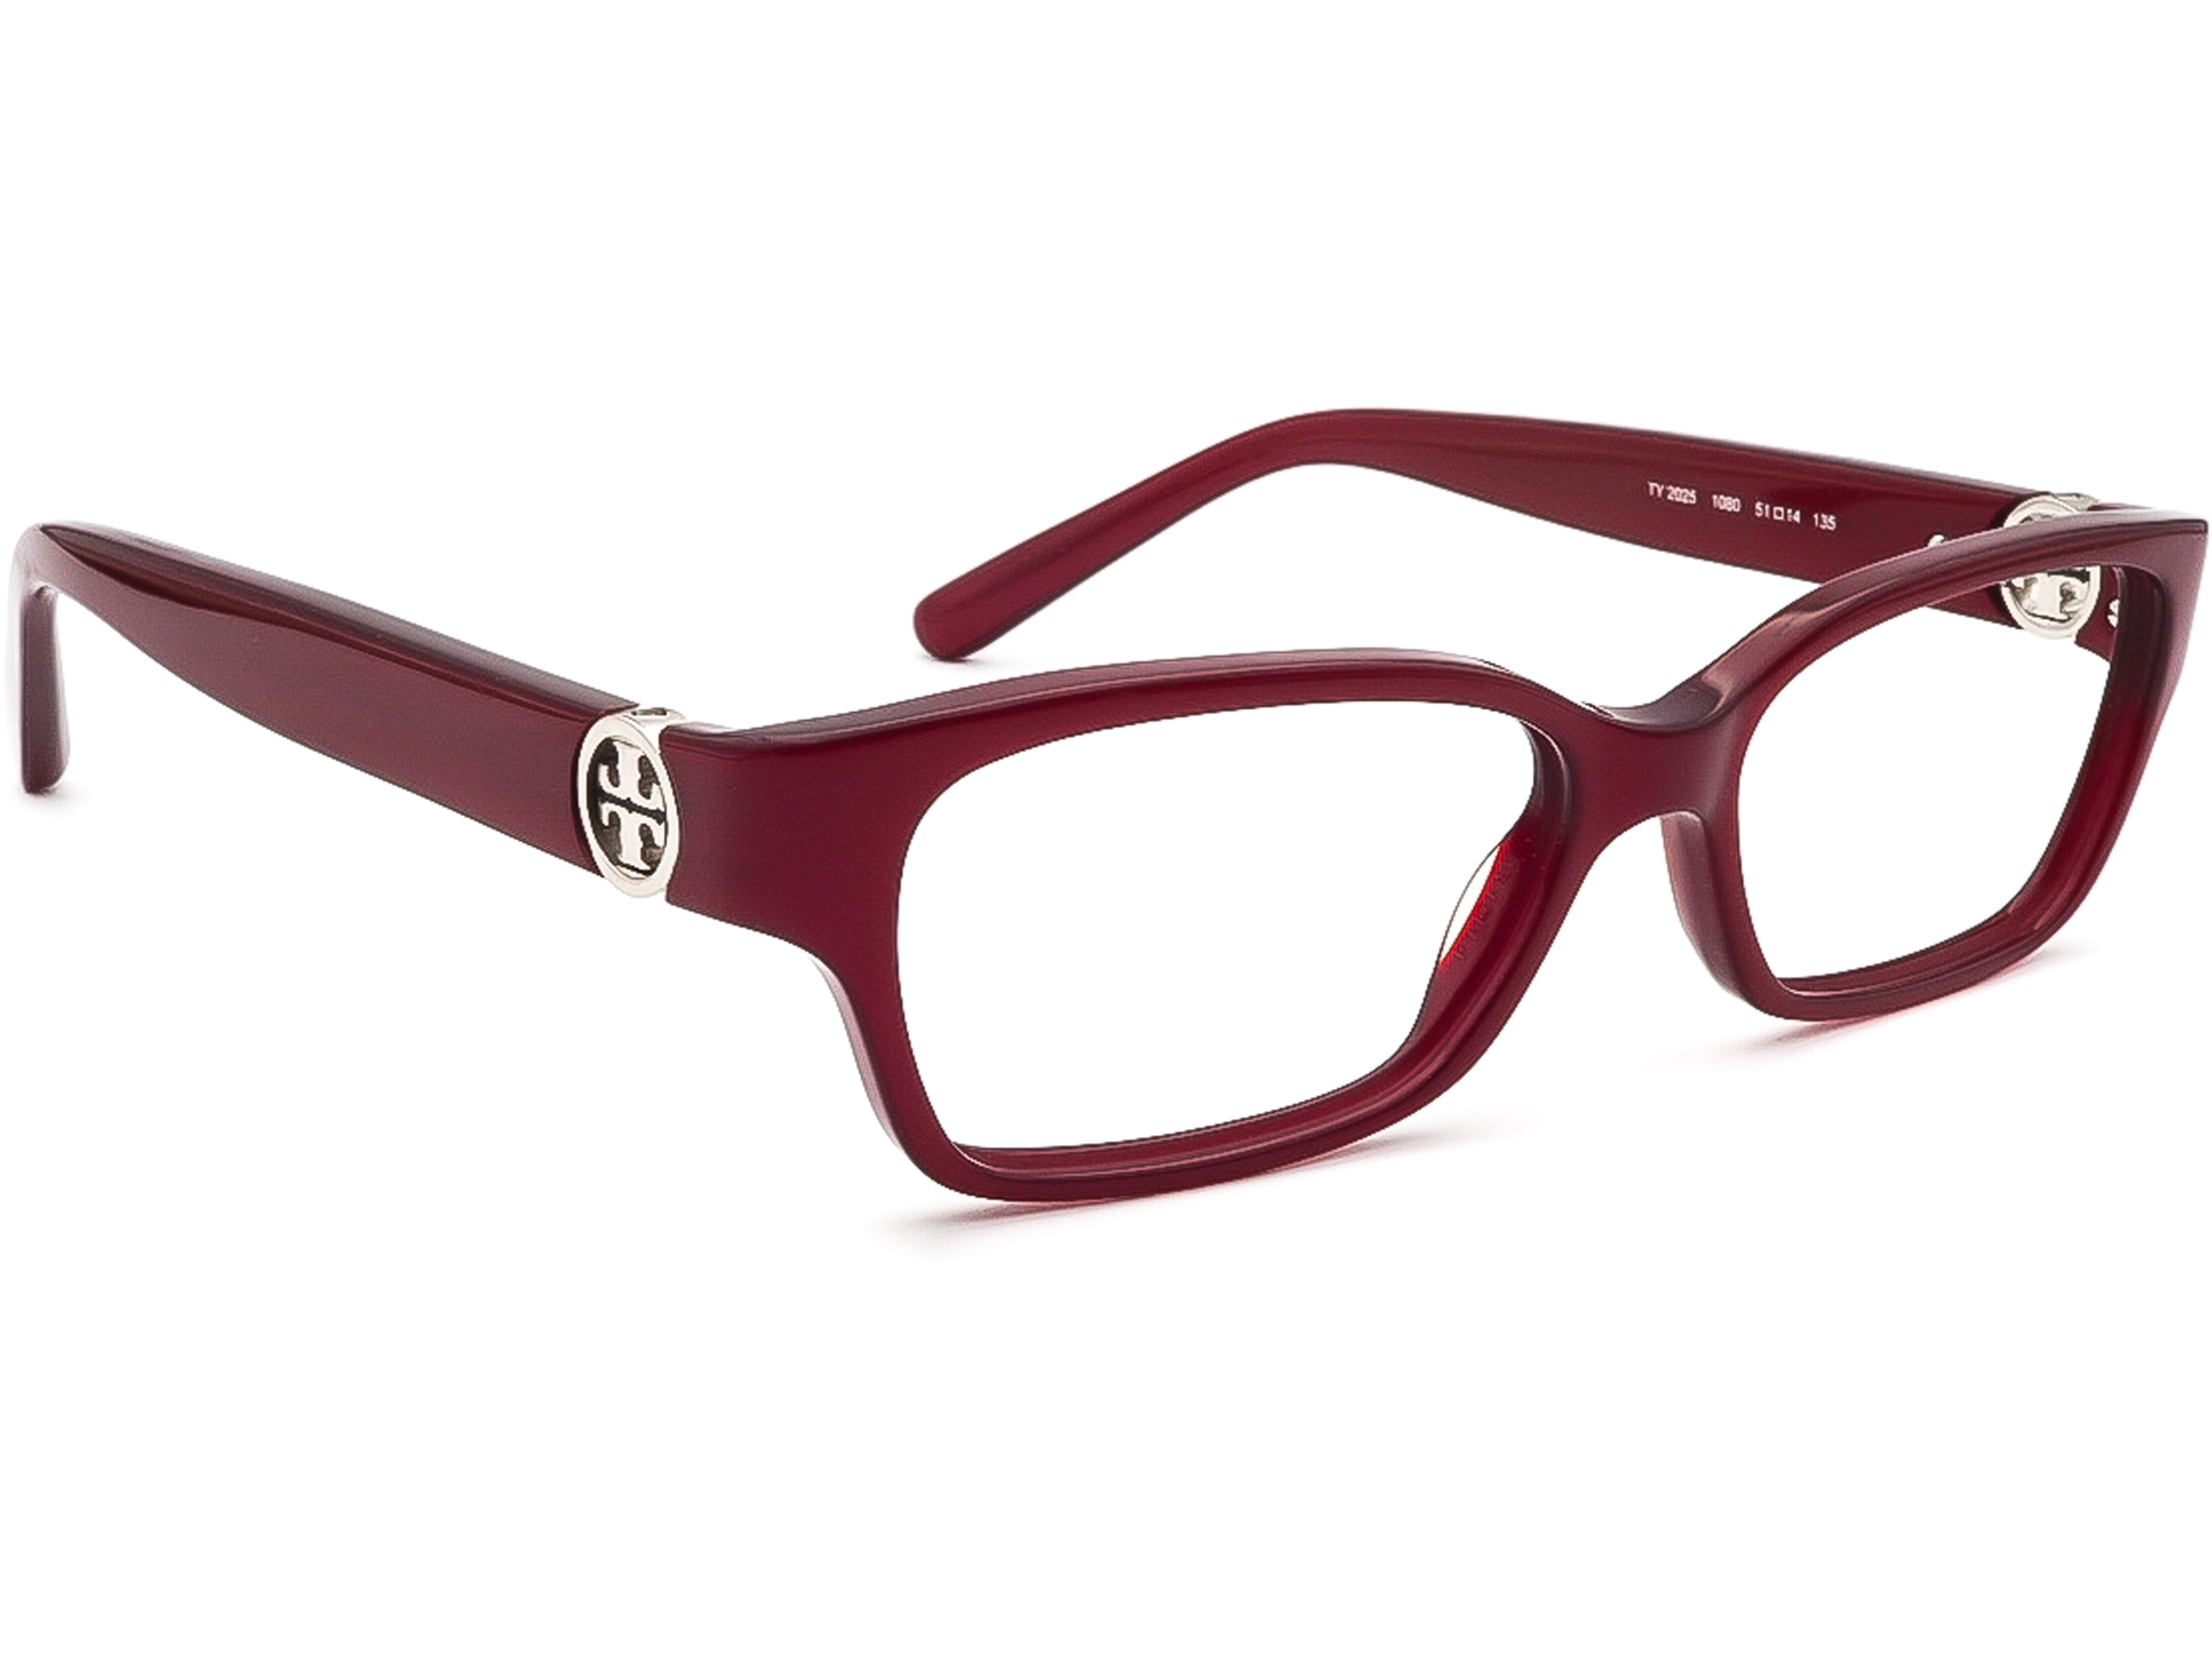 Tory Burch TY 2025 1080 Eyeglasses